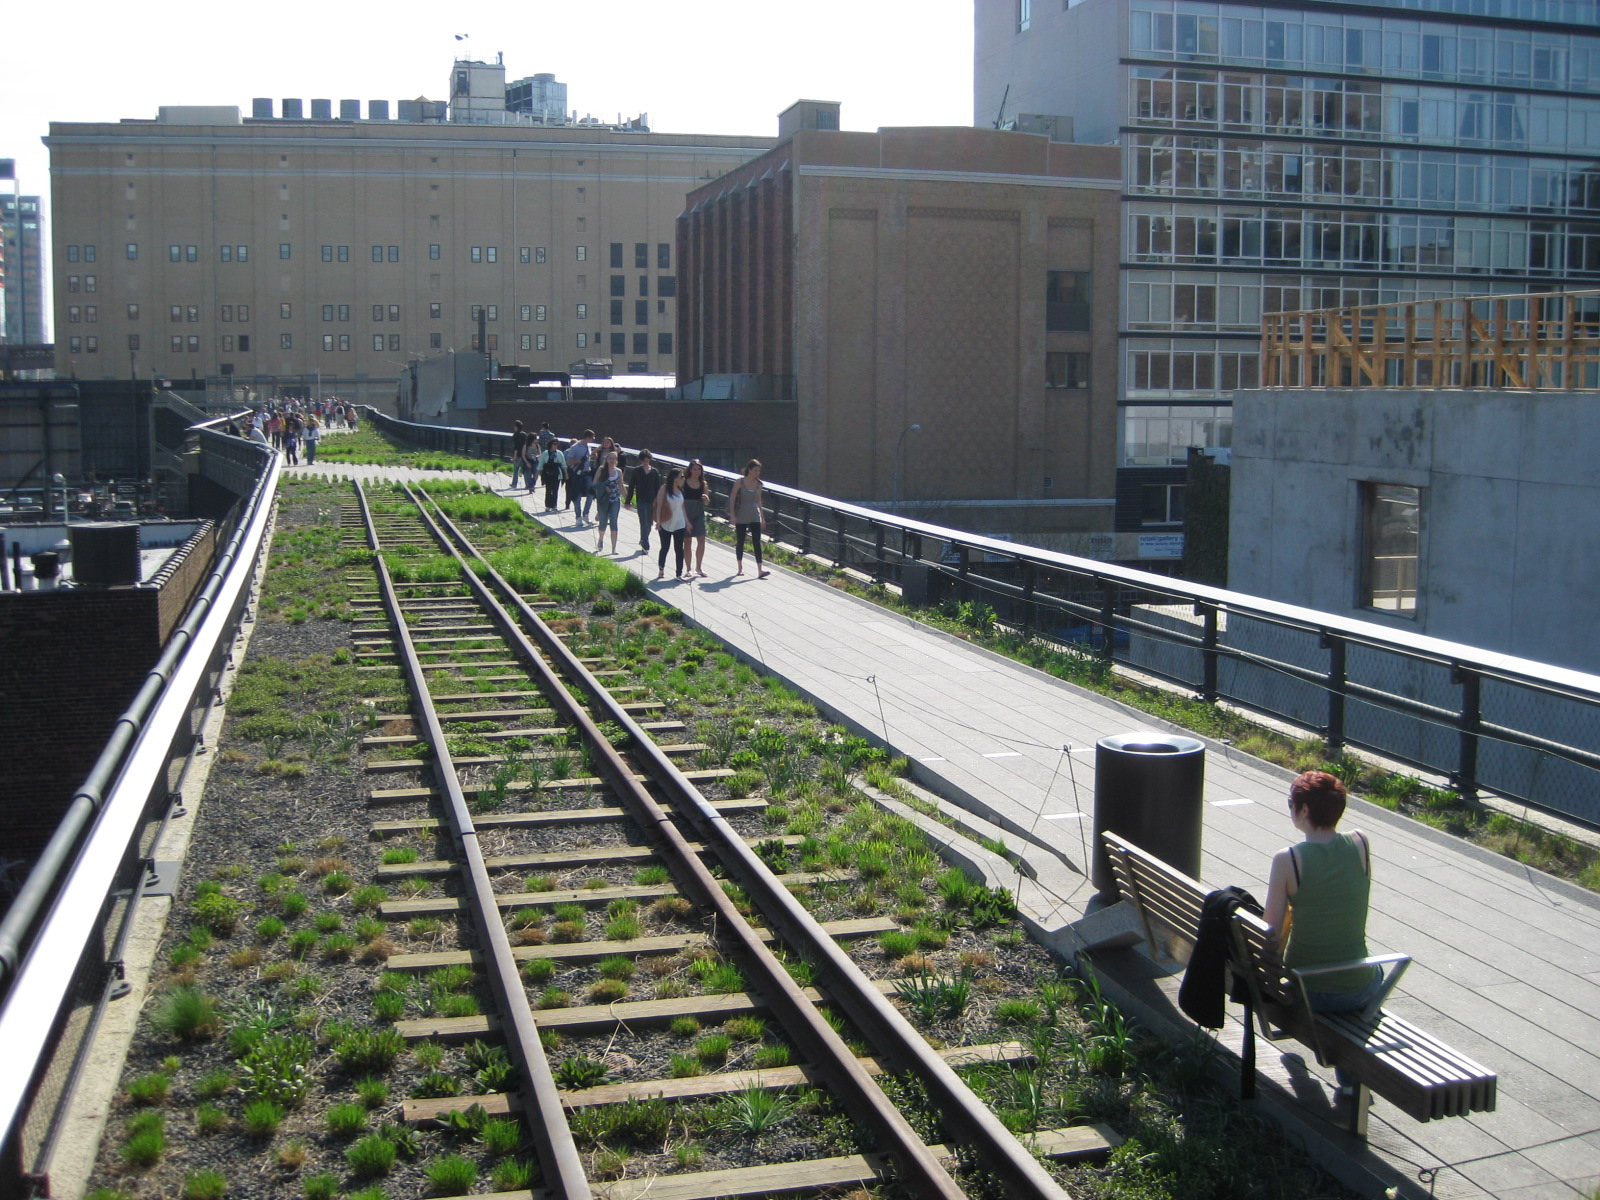 Visiting High Line Park is just one of the many unusual things to do in New York City...